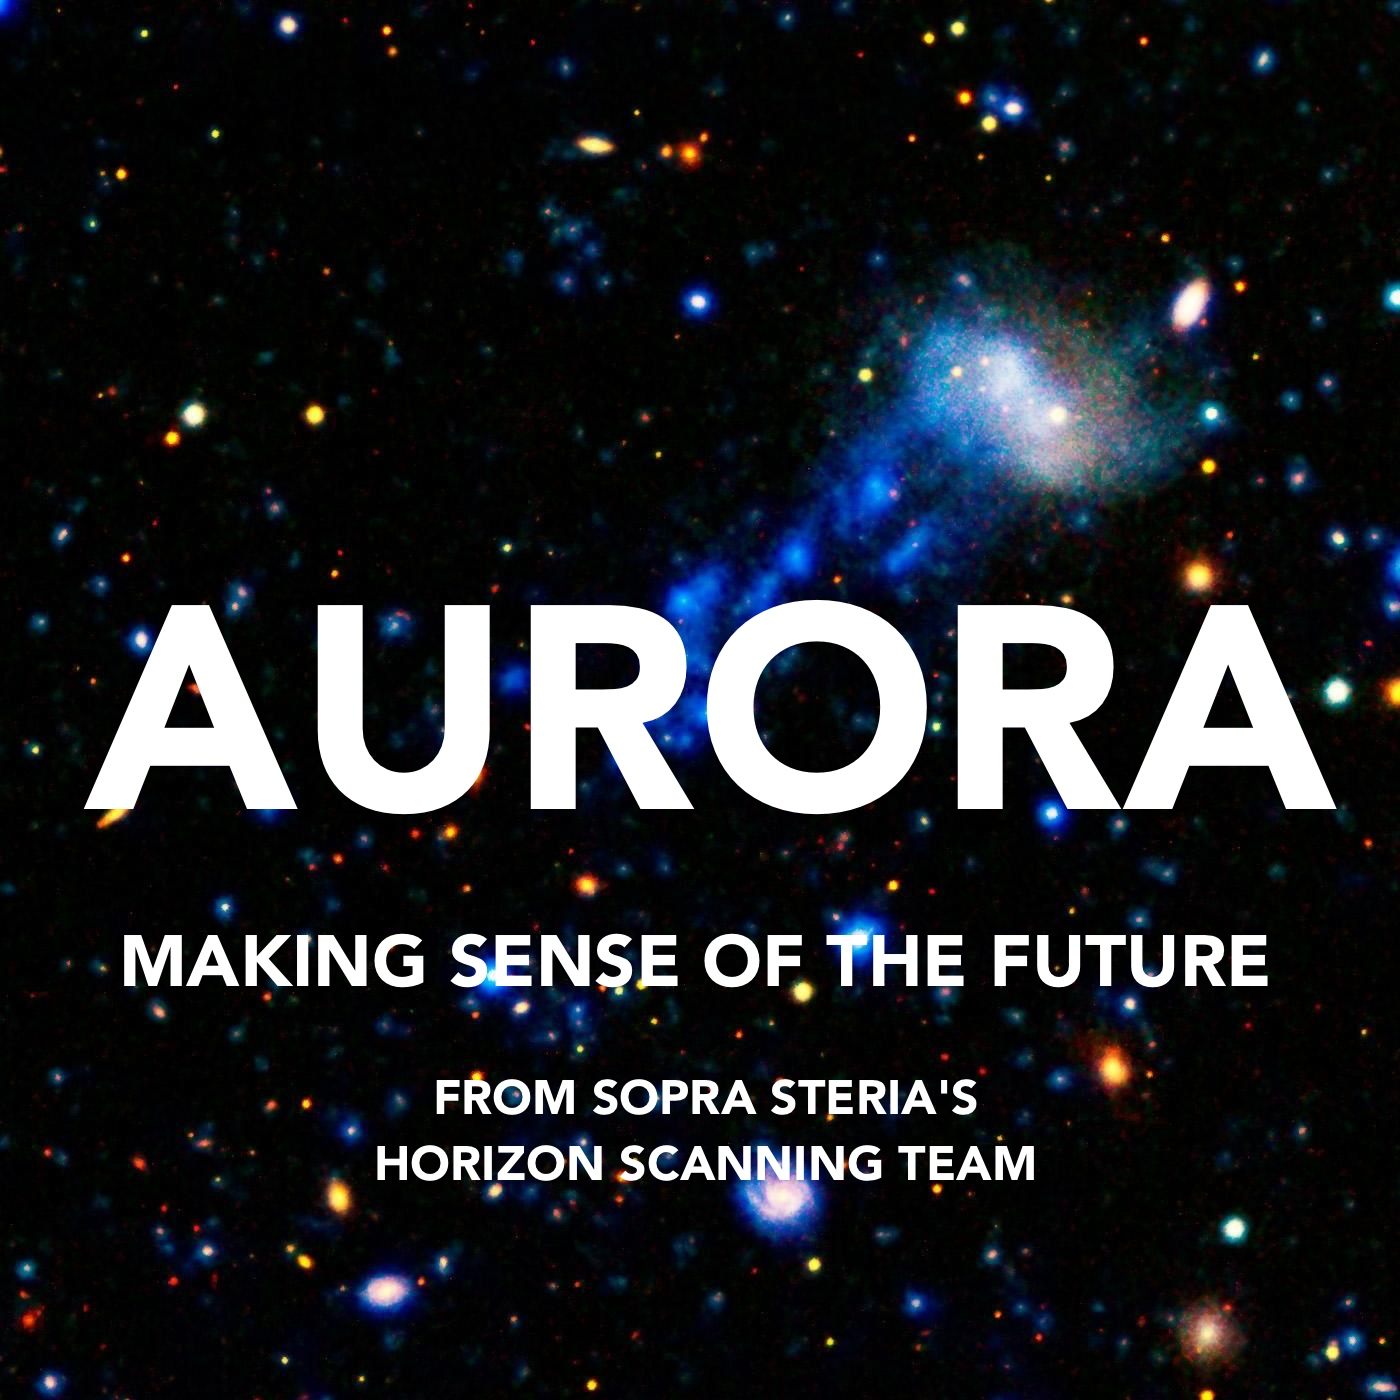 Aurora - Making Sense of the Future